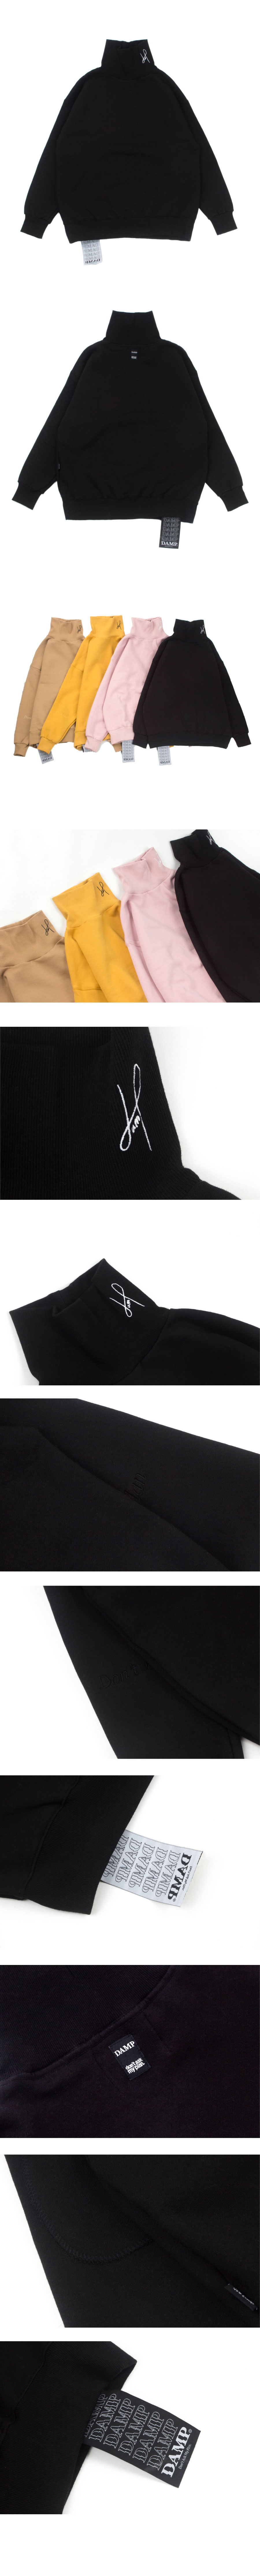 돈애스크마이플랜(DAMP) SIGNATURE LOGO TURTLENECK 2.0 BLACK